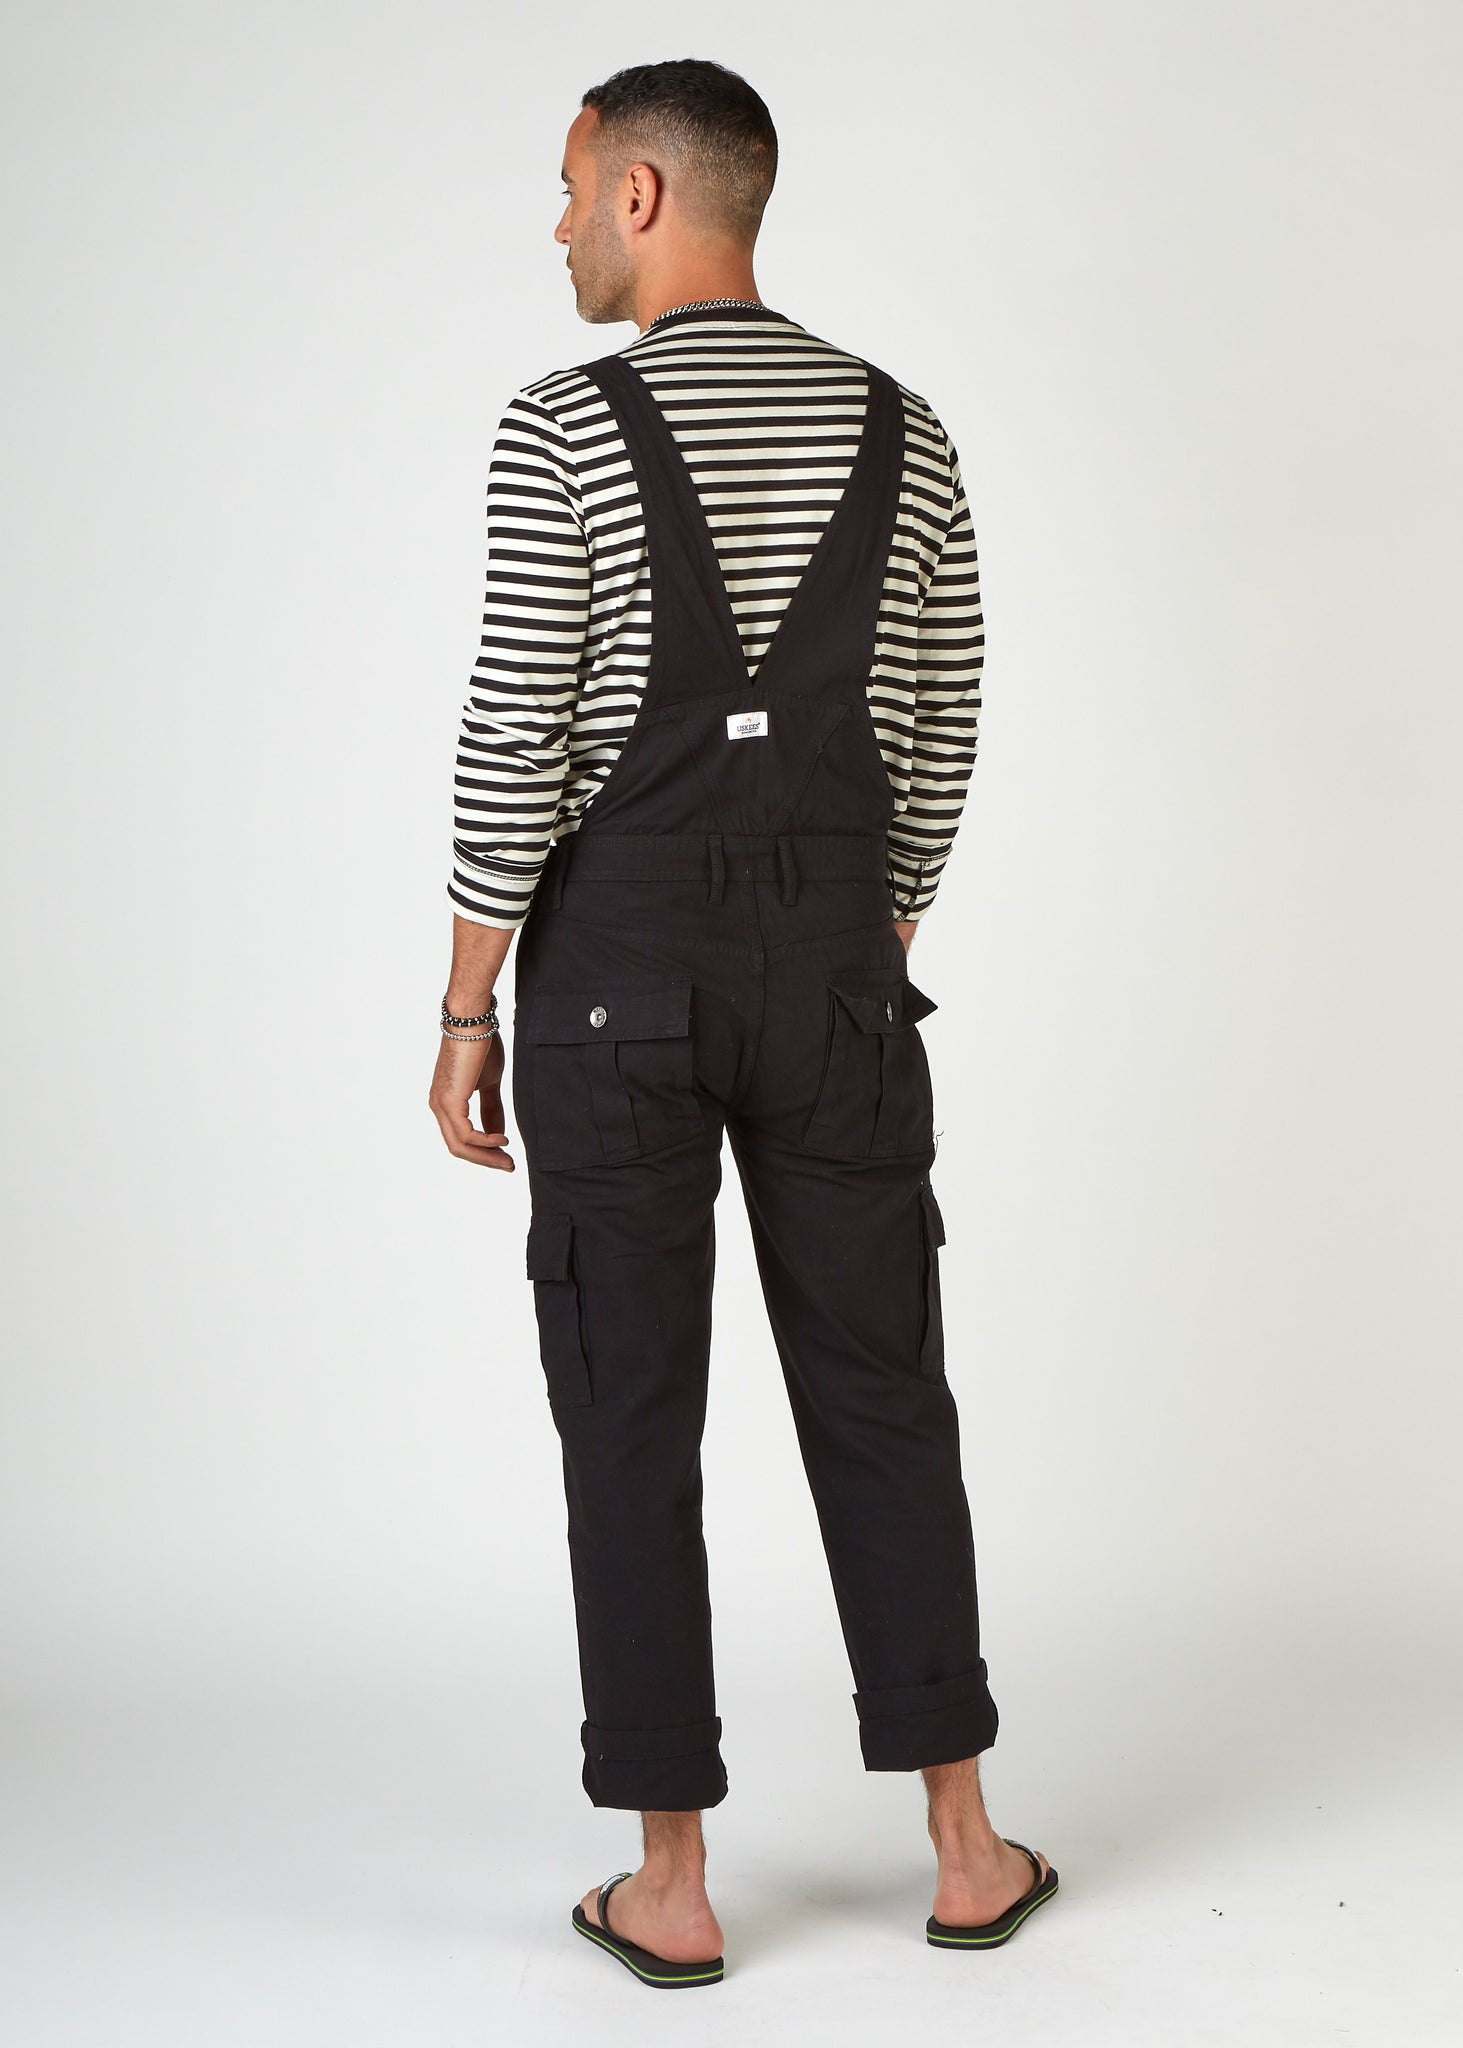 Full back pose facing slightly to left, with hand in right pocket wearing black overalls from Dungarees Online.